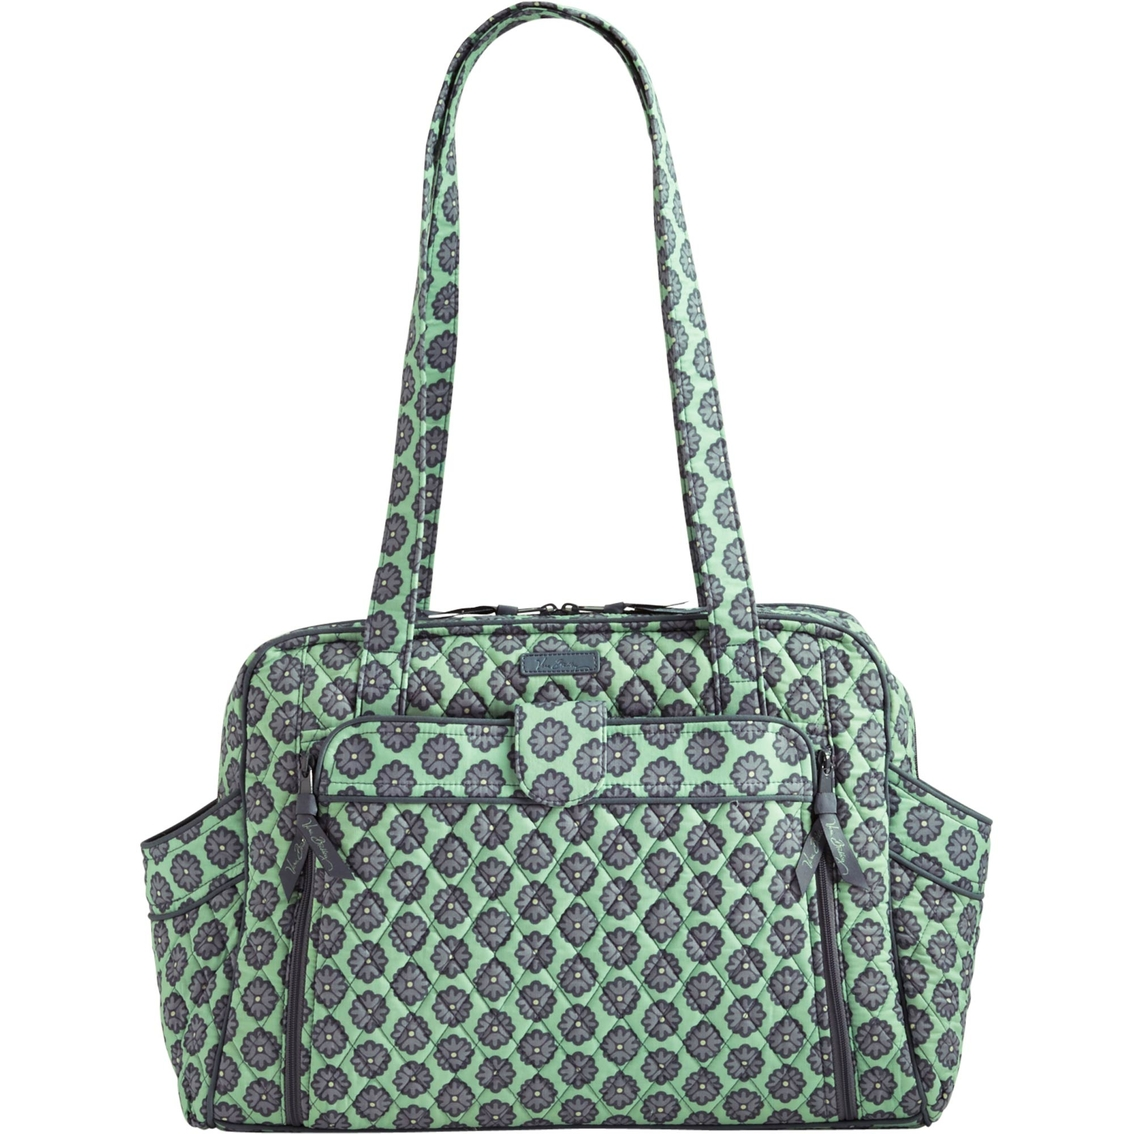 Give your bags a little pop with Vera Bradley! Check out Vera Bradley's selection of bags priced under $ No promo code required. Check out Vera Bradley's selection of bags priced under $ No .